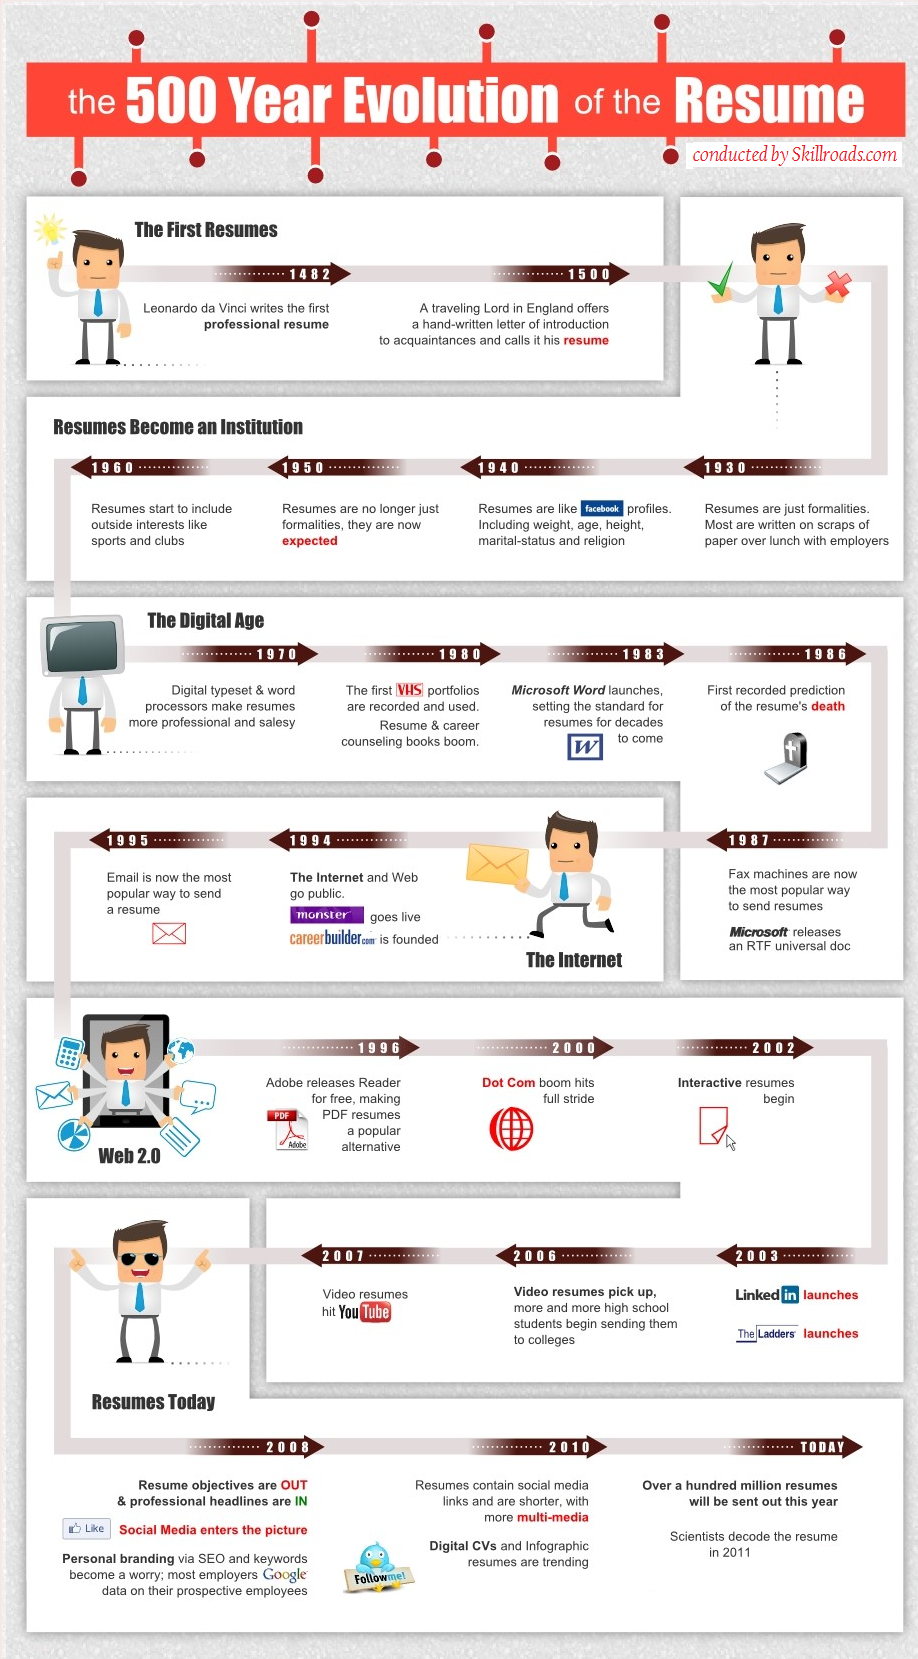 evolution_of_a_resume_infographic_photo